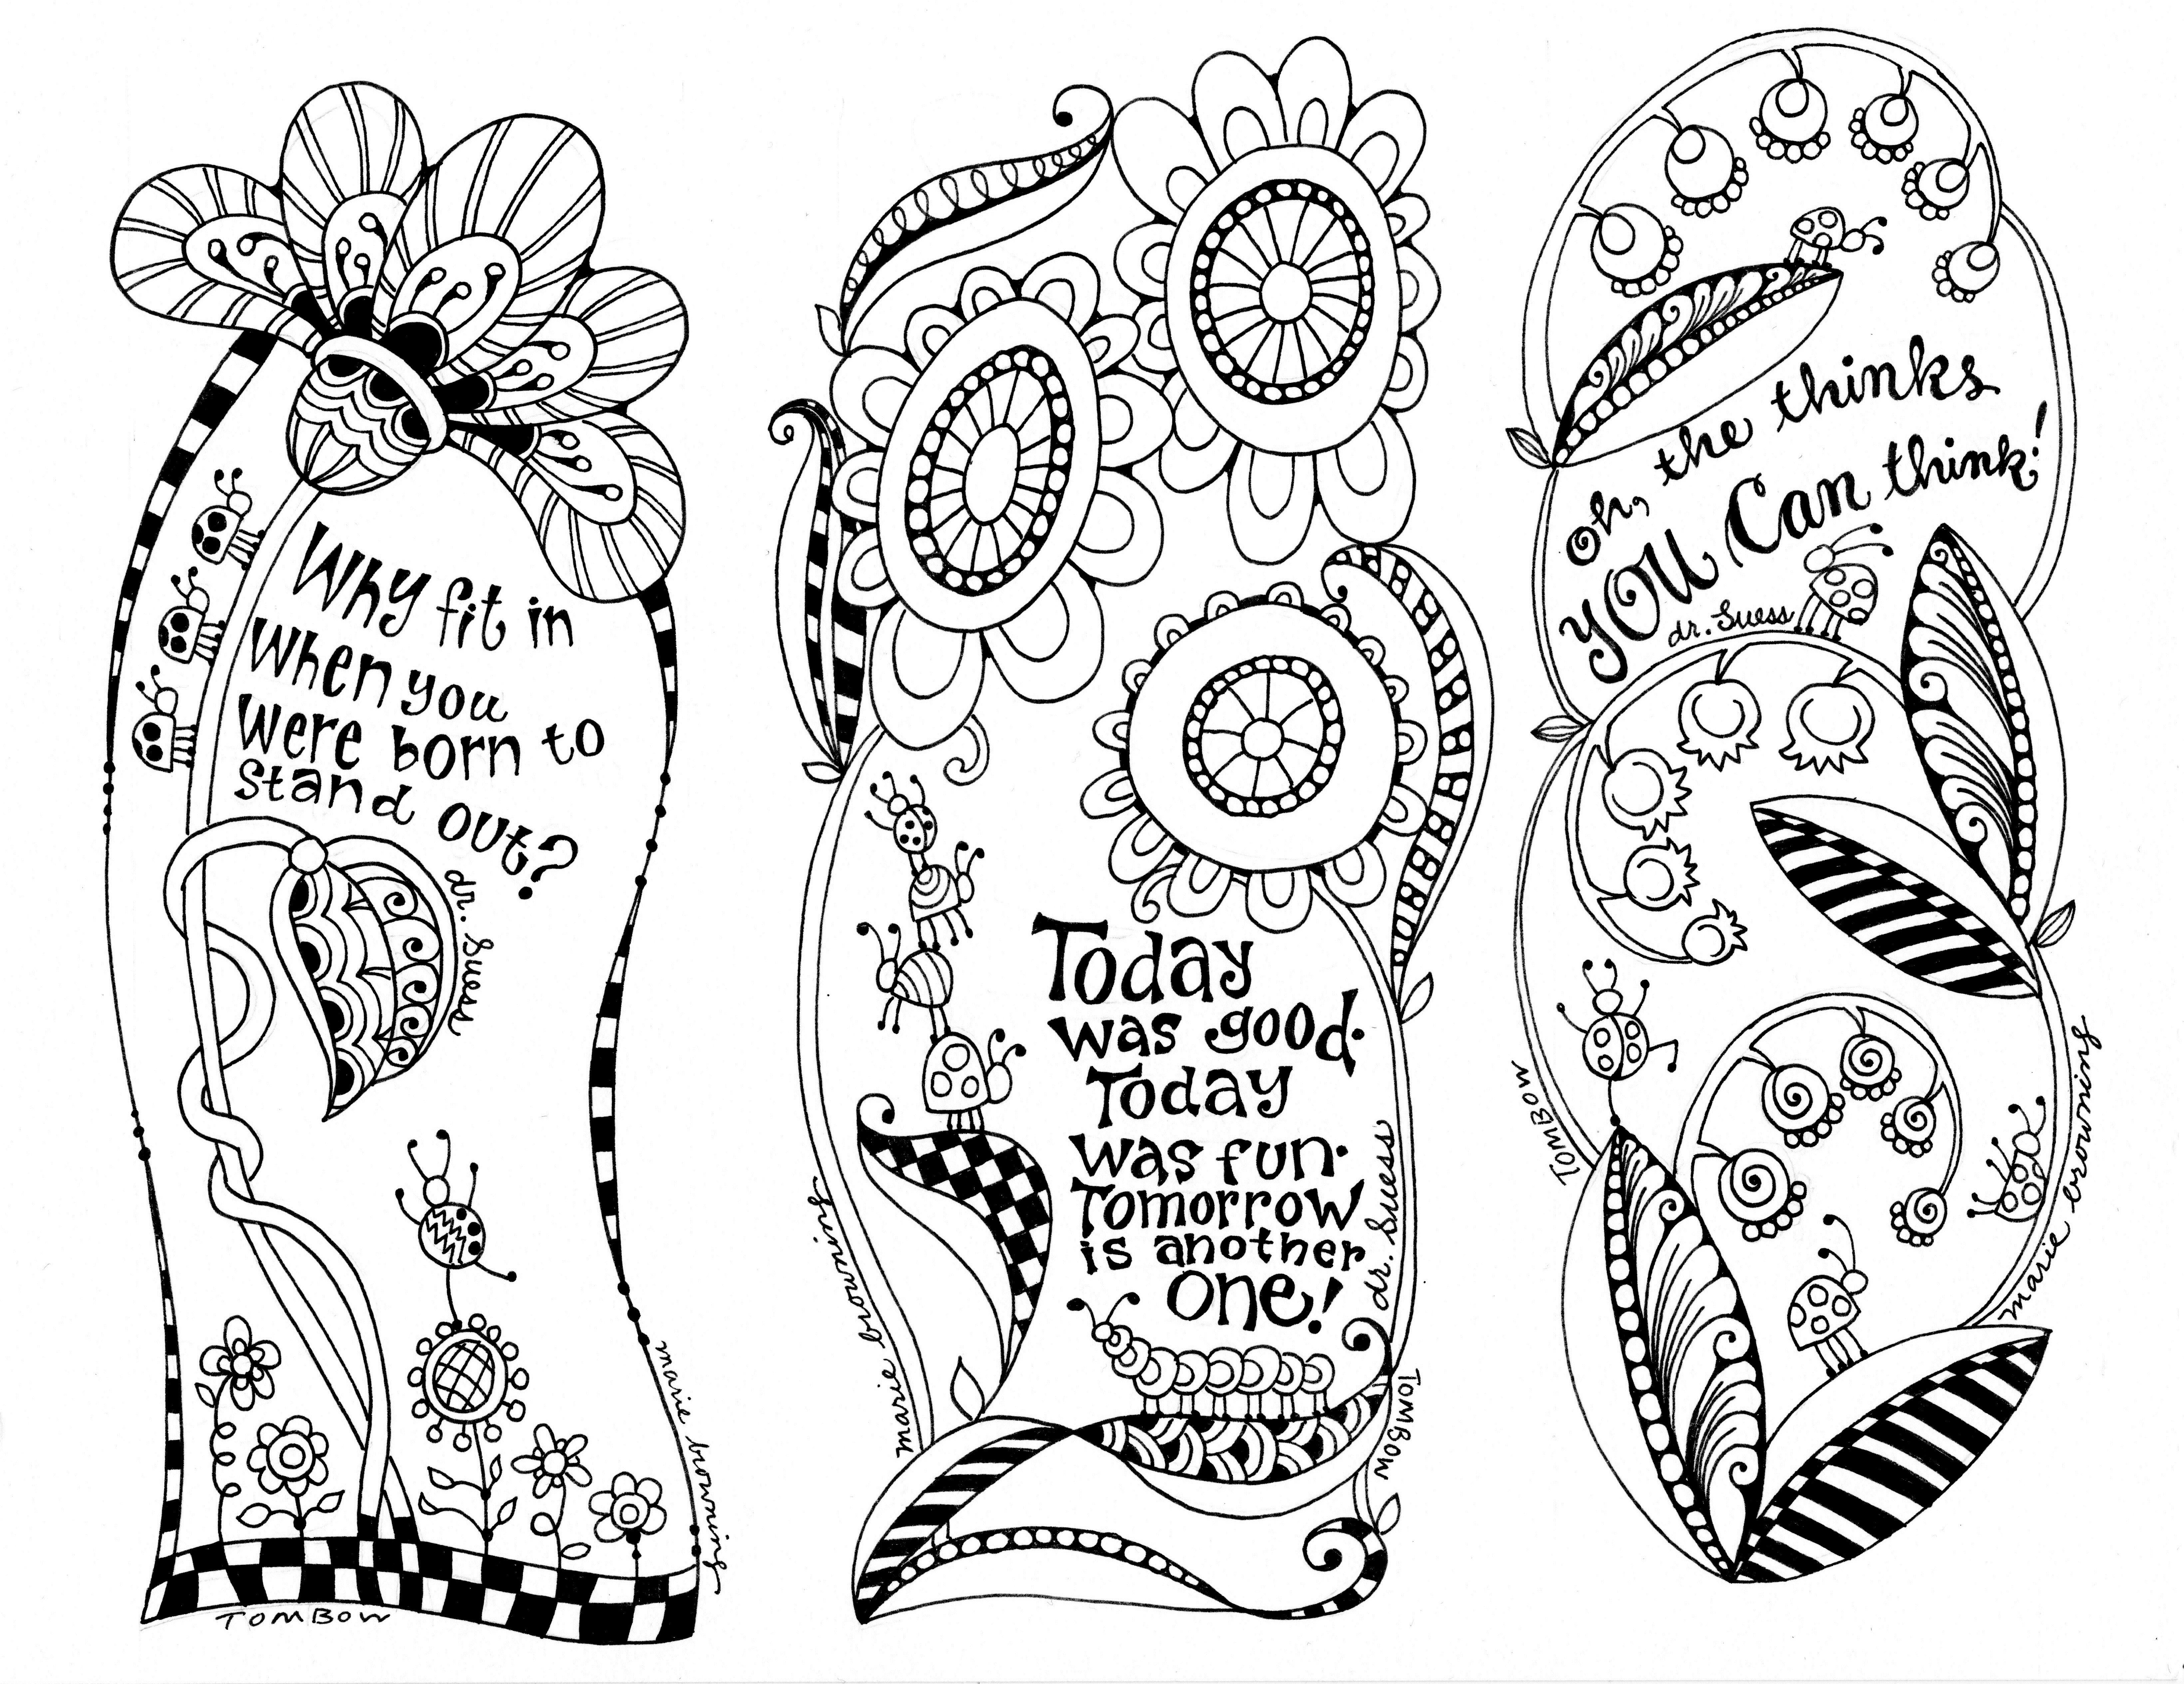 Dr. Seuss Coloring Page Illustrated By Marie Browning